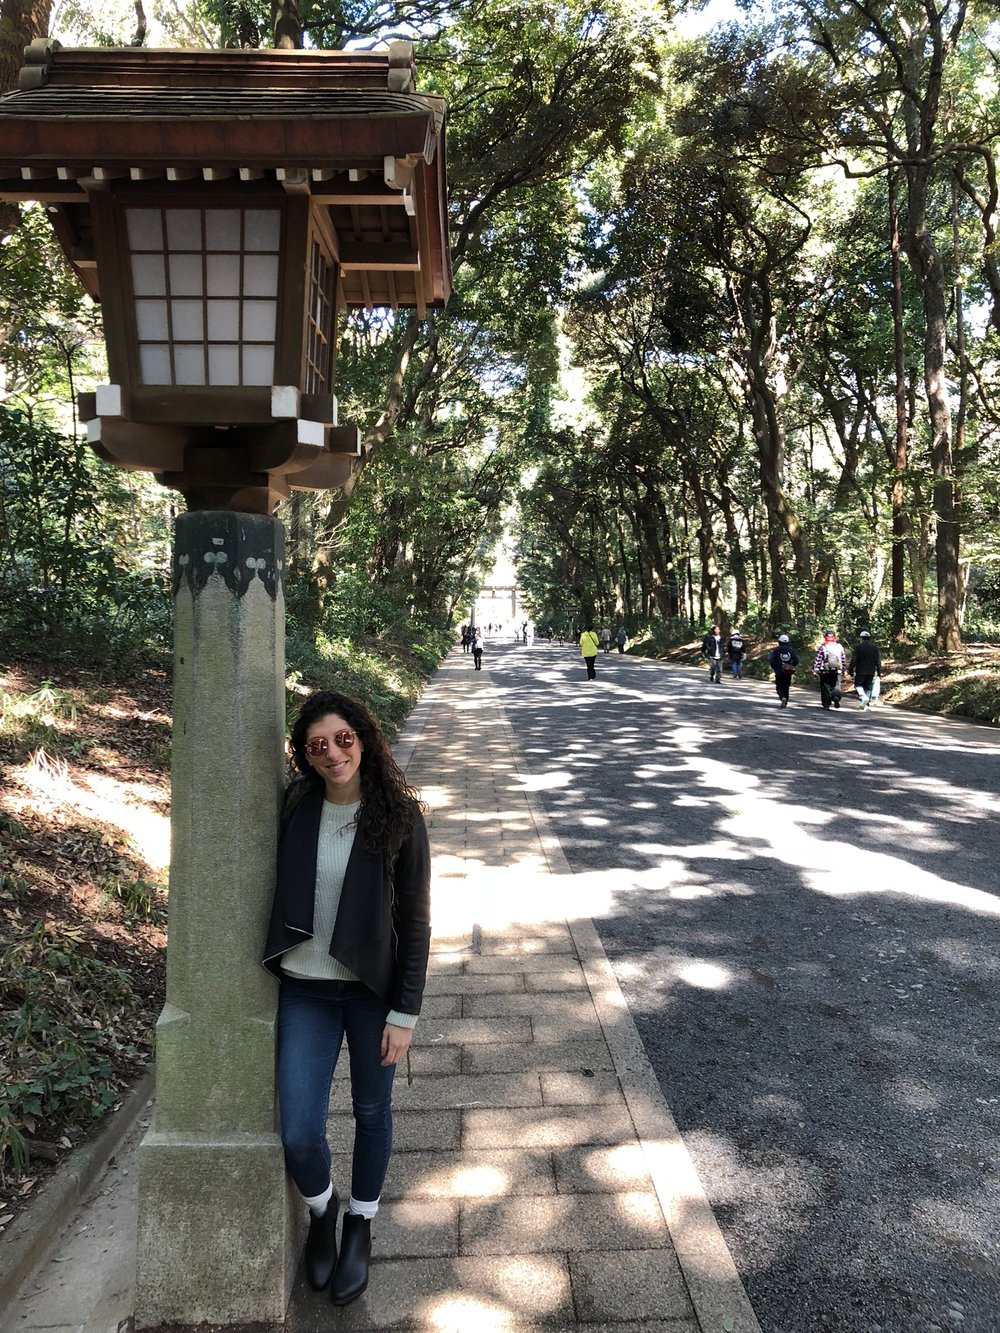 Here's Al next to one of the latterns lining the paths leading to the Meji Shrine